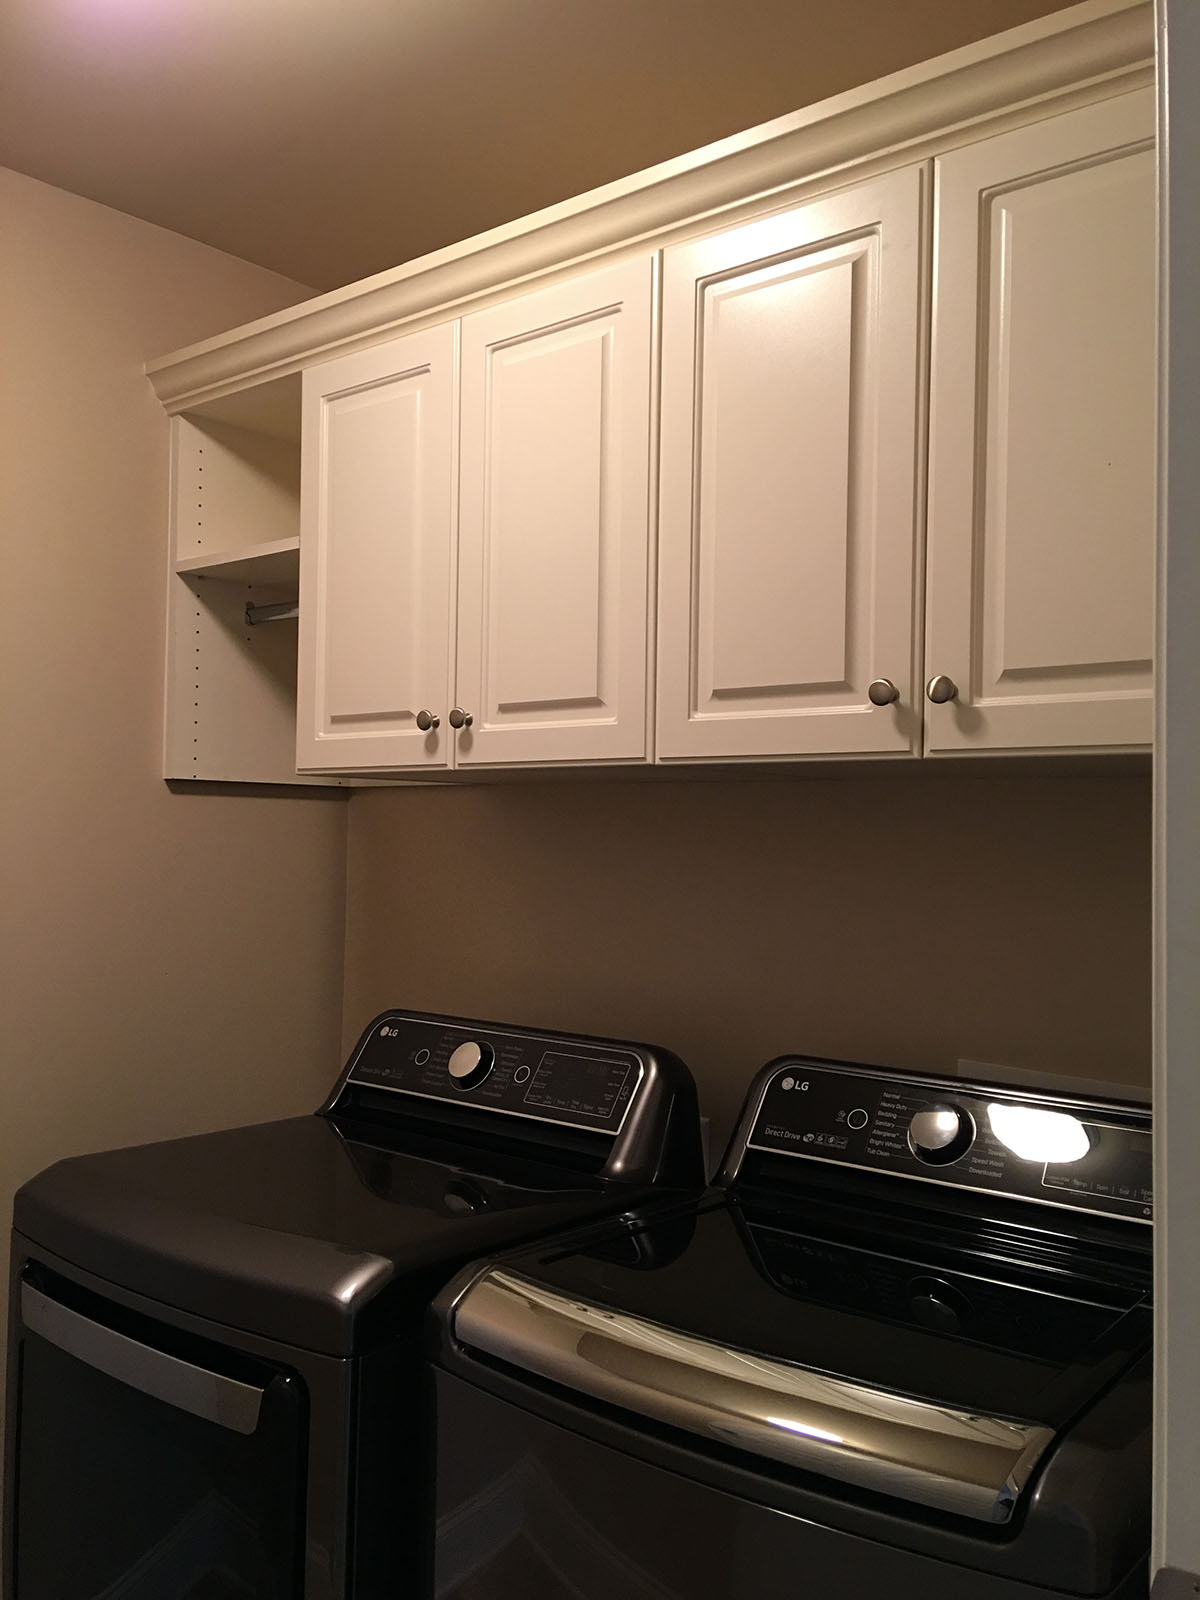 laundry room cabinets with clothing rod